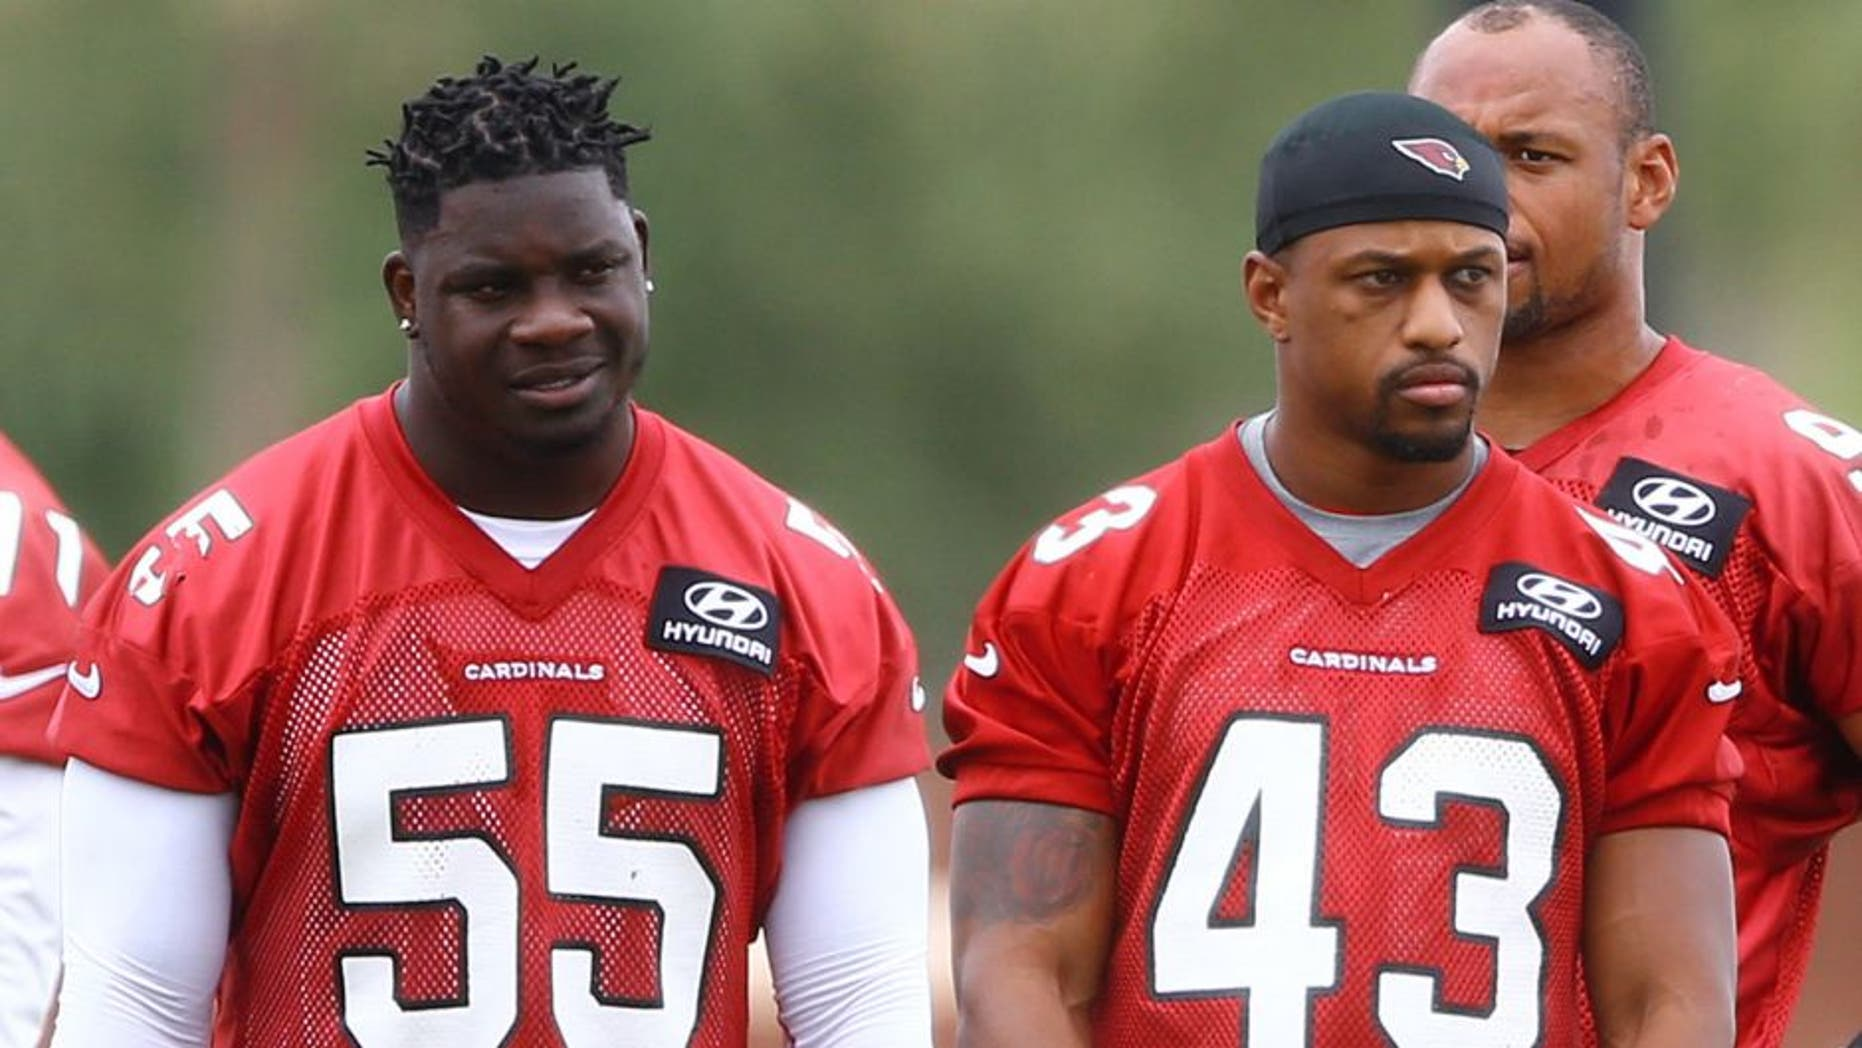 Jun 9, 2015; Tempe, AZ, USA; Arizona Cardinals linebacker Sean Weatherspoon (55) and safety D.J. Campbell (43) during minicamp practice at the Cardinals Training Facility. Mandatory Credit: Mark J. Rebilas-USA TODAY Sports